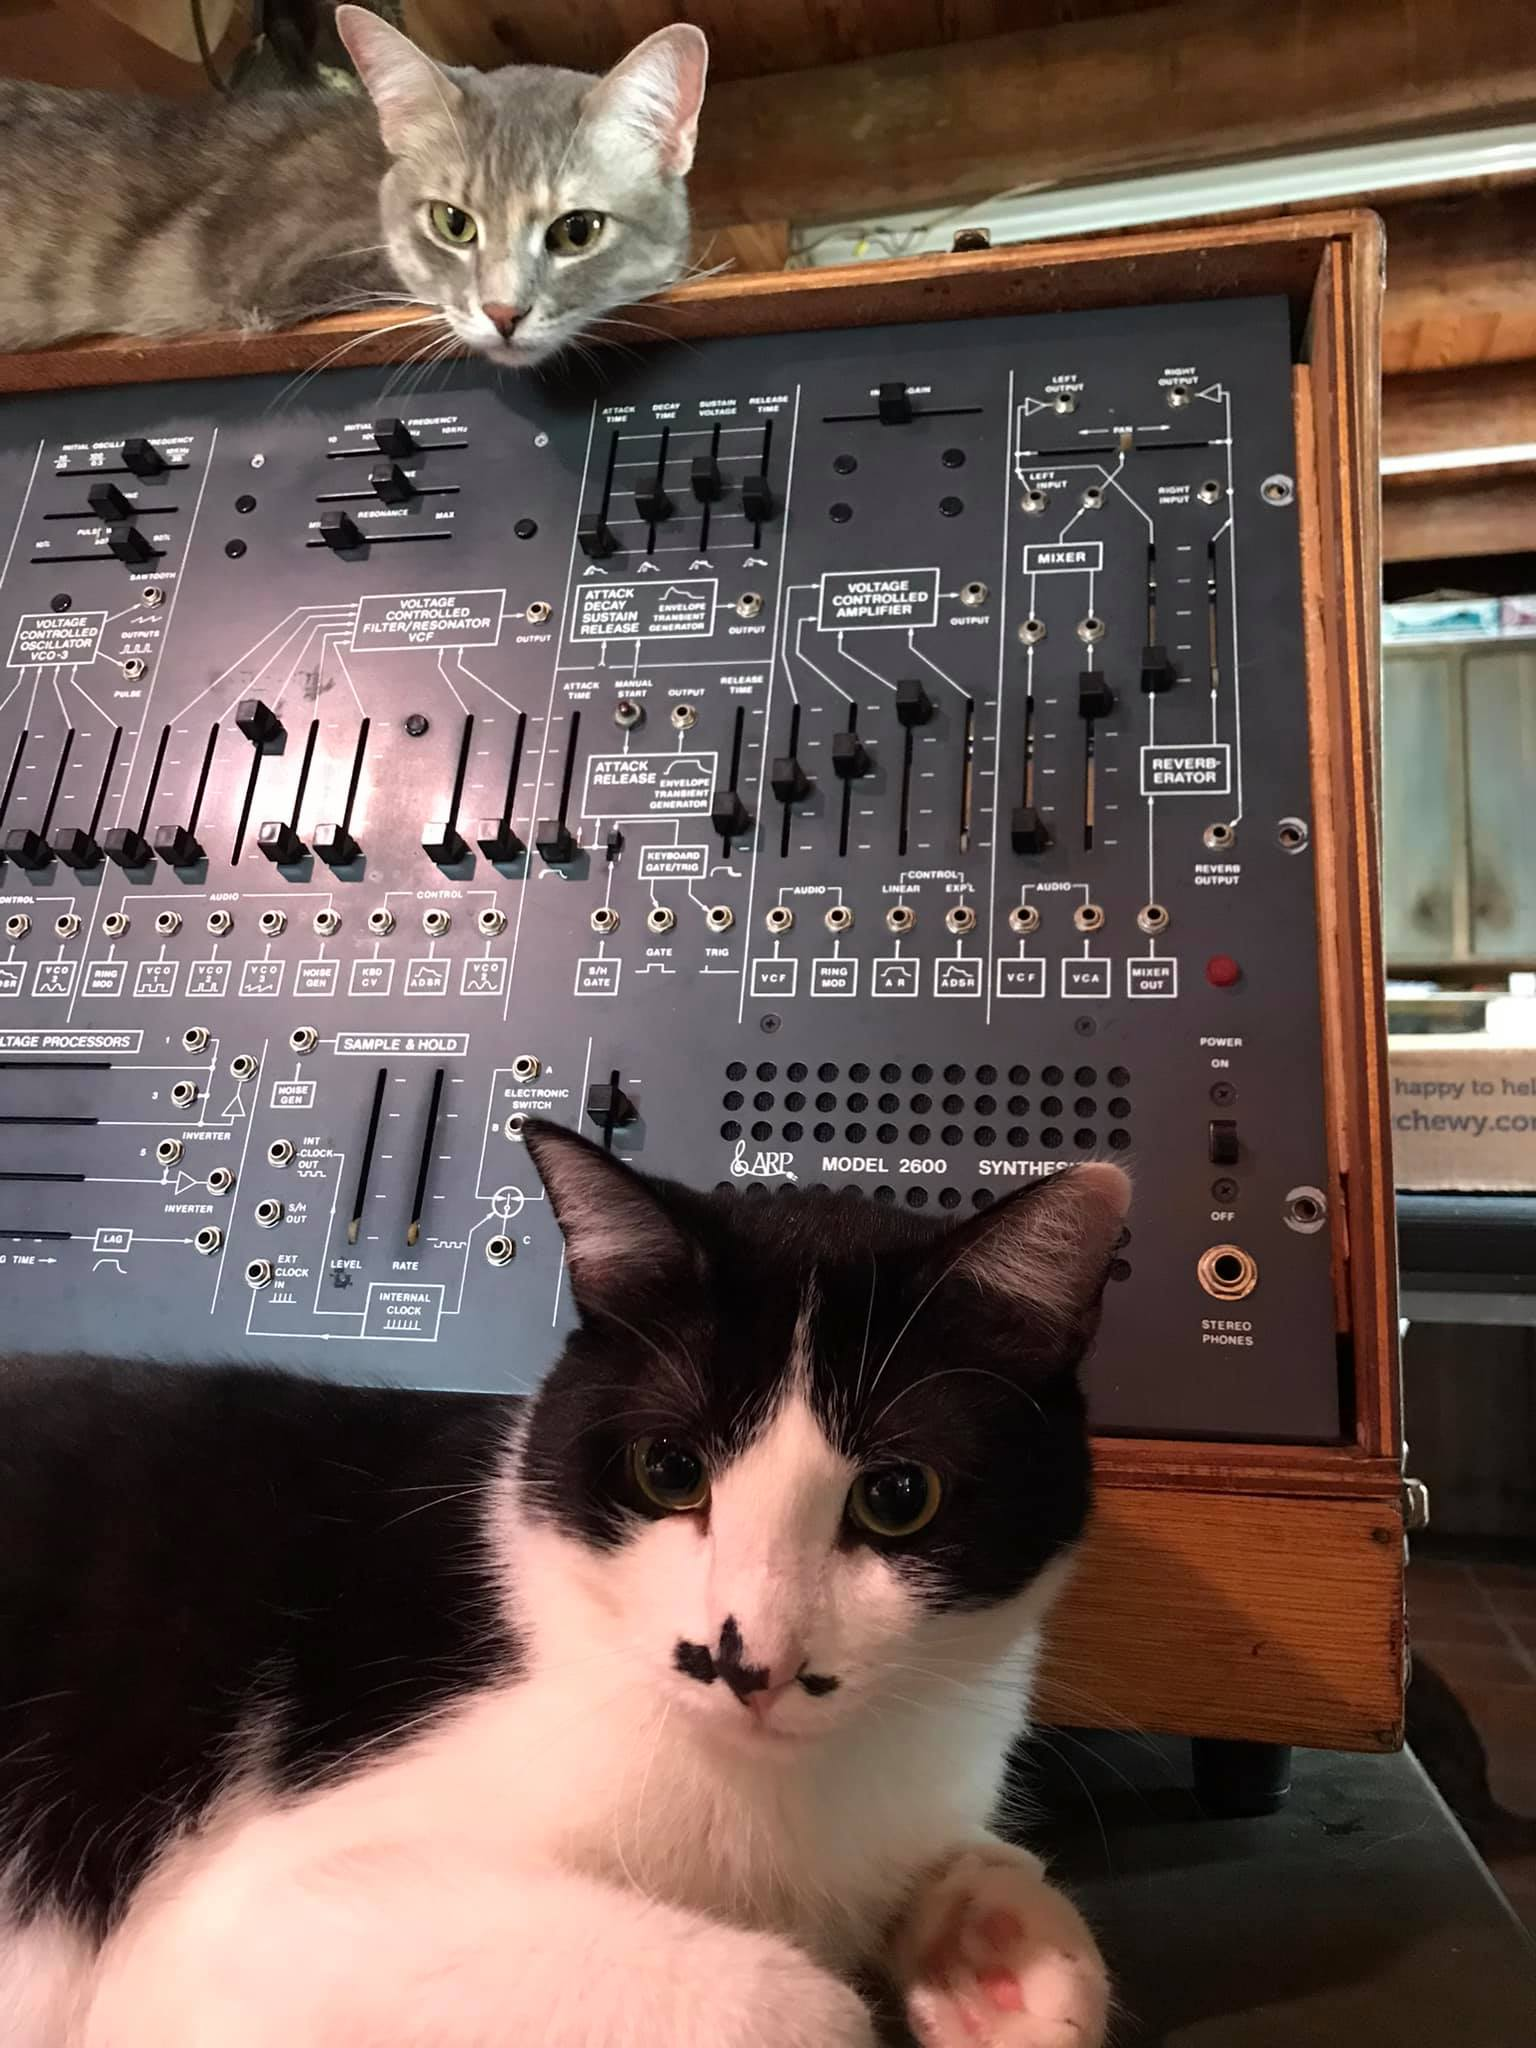 Two cats, Ansel (tuxedo) and Olive (gray) with an ARP 2600 synthesizer